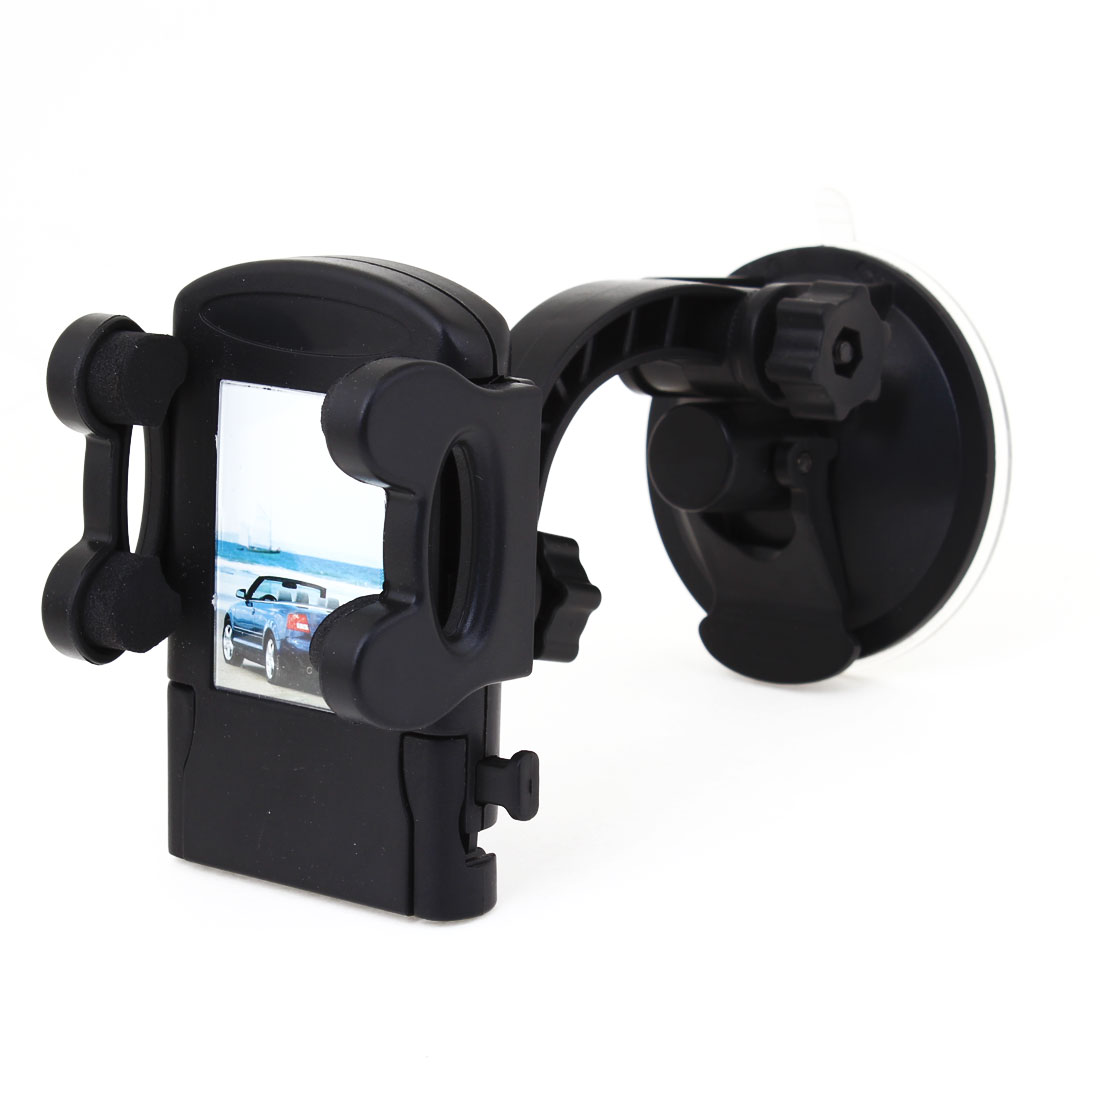 Auto Car Suction Cup Mounting Black Plastic Cell Phone MP4 PDA Holder Supporter